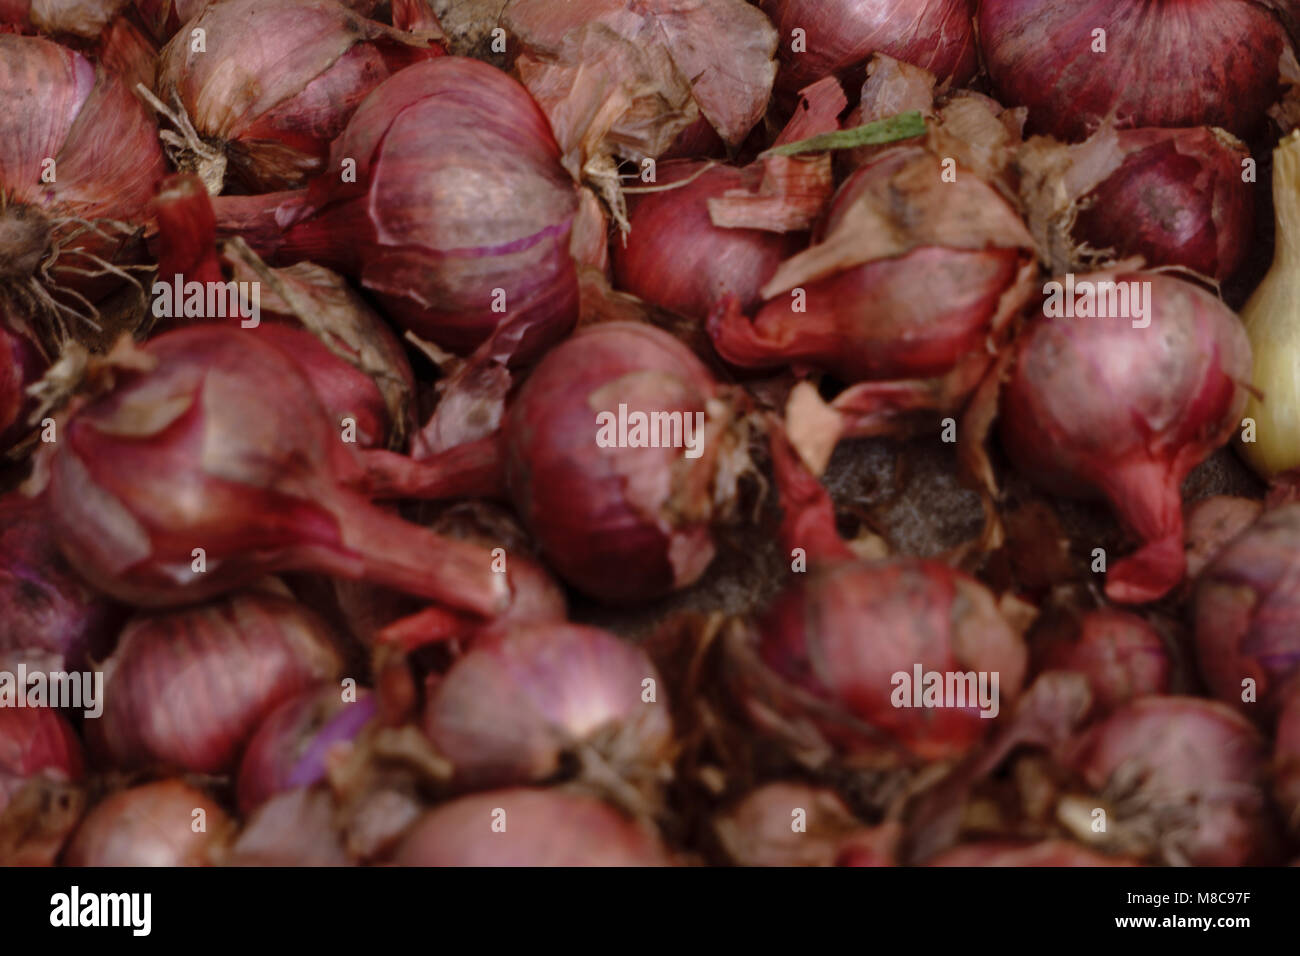 Red onions in plenty - Stock Image